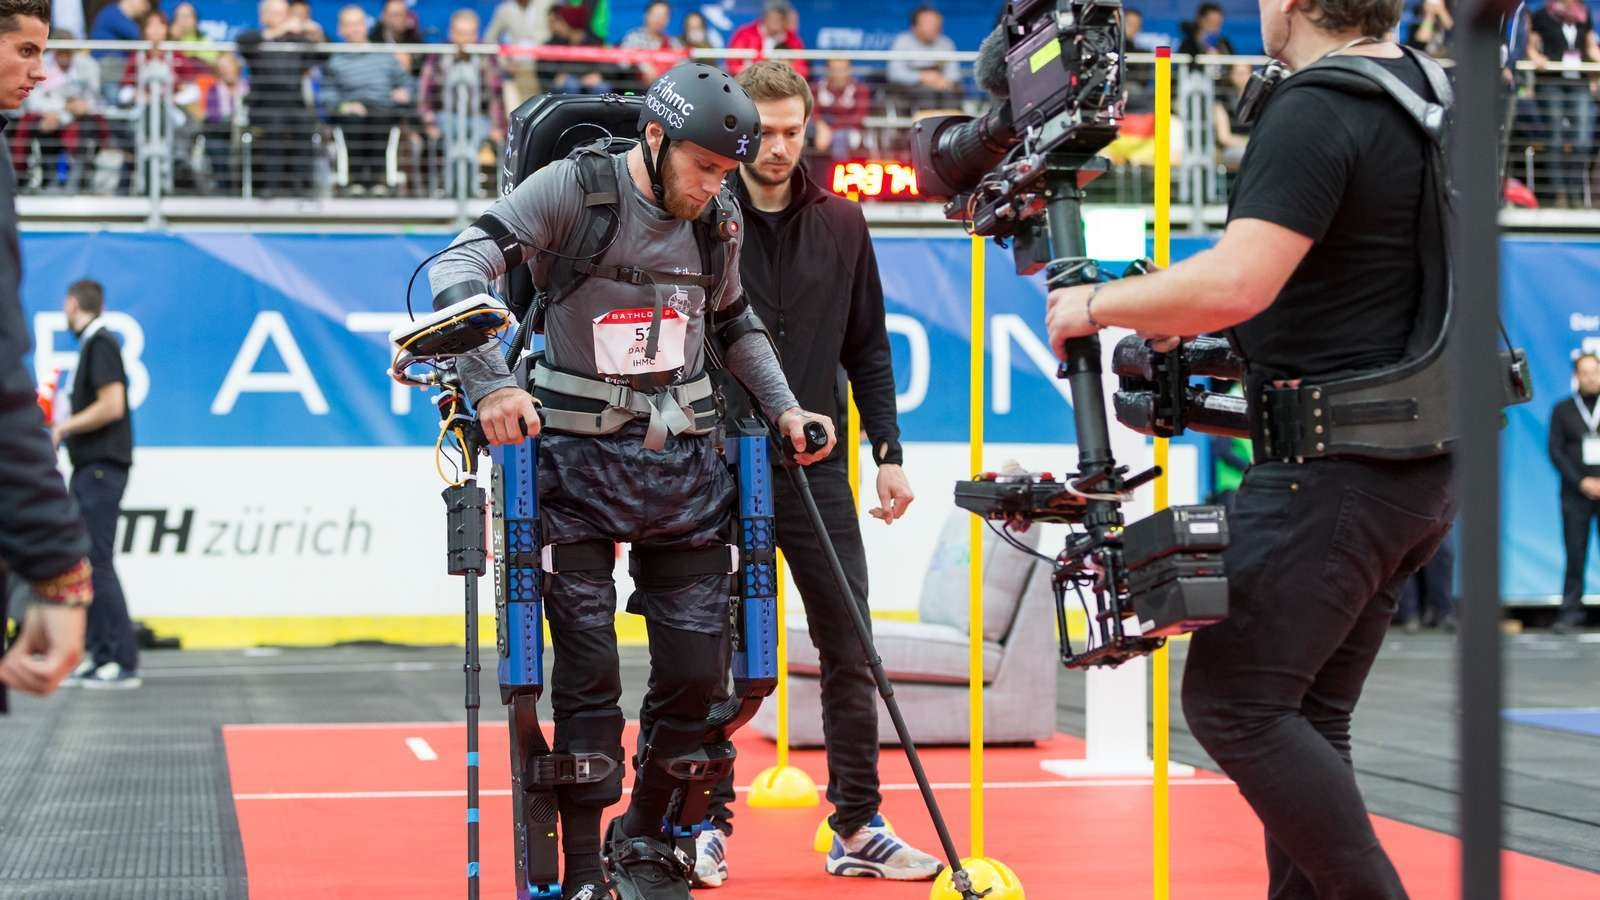 The Cybathlon: Where Paraplegics Walk Again